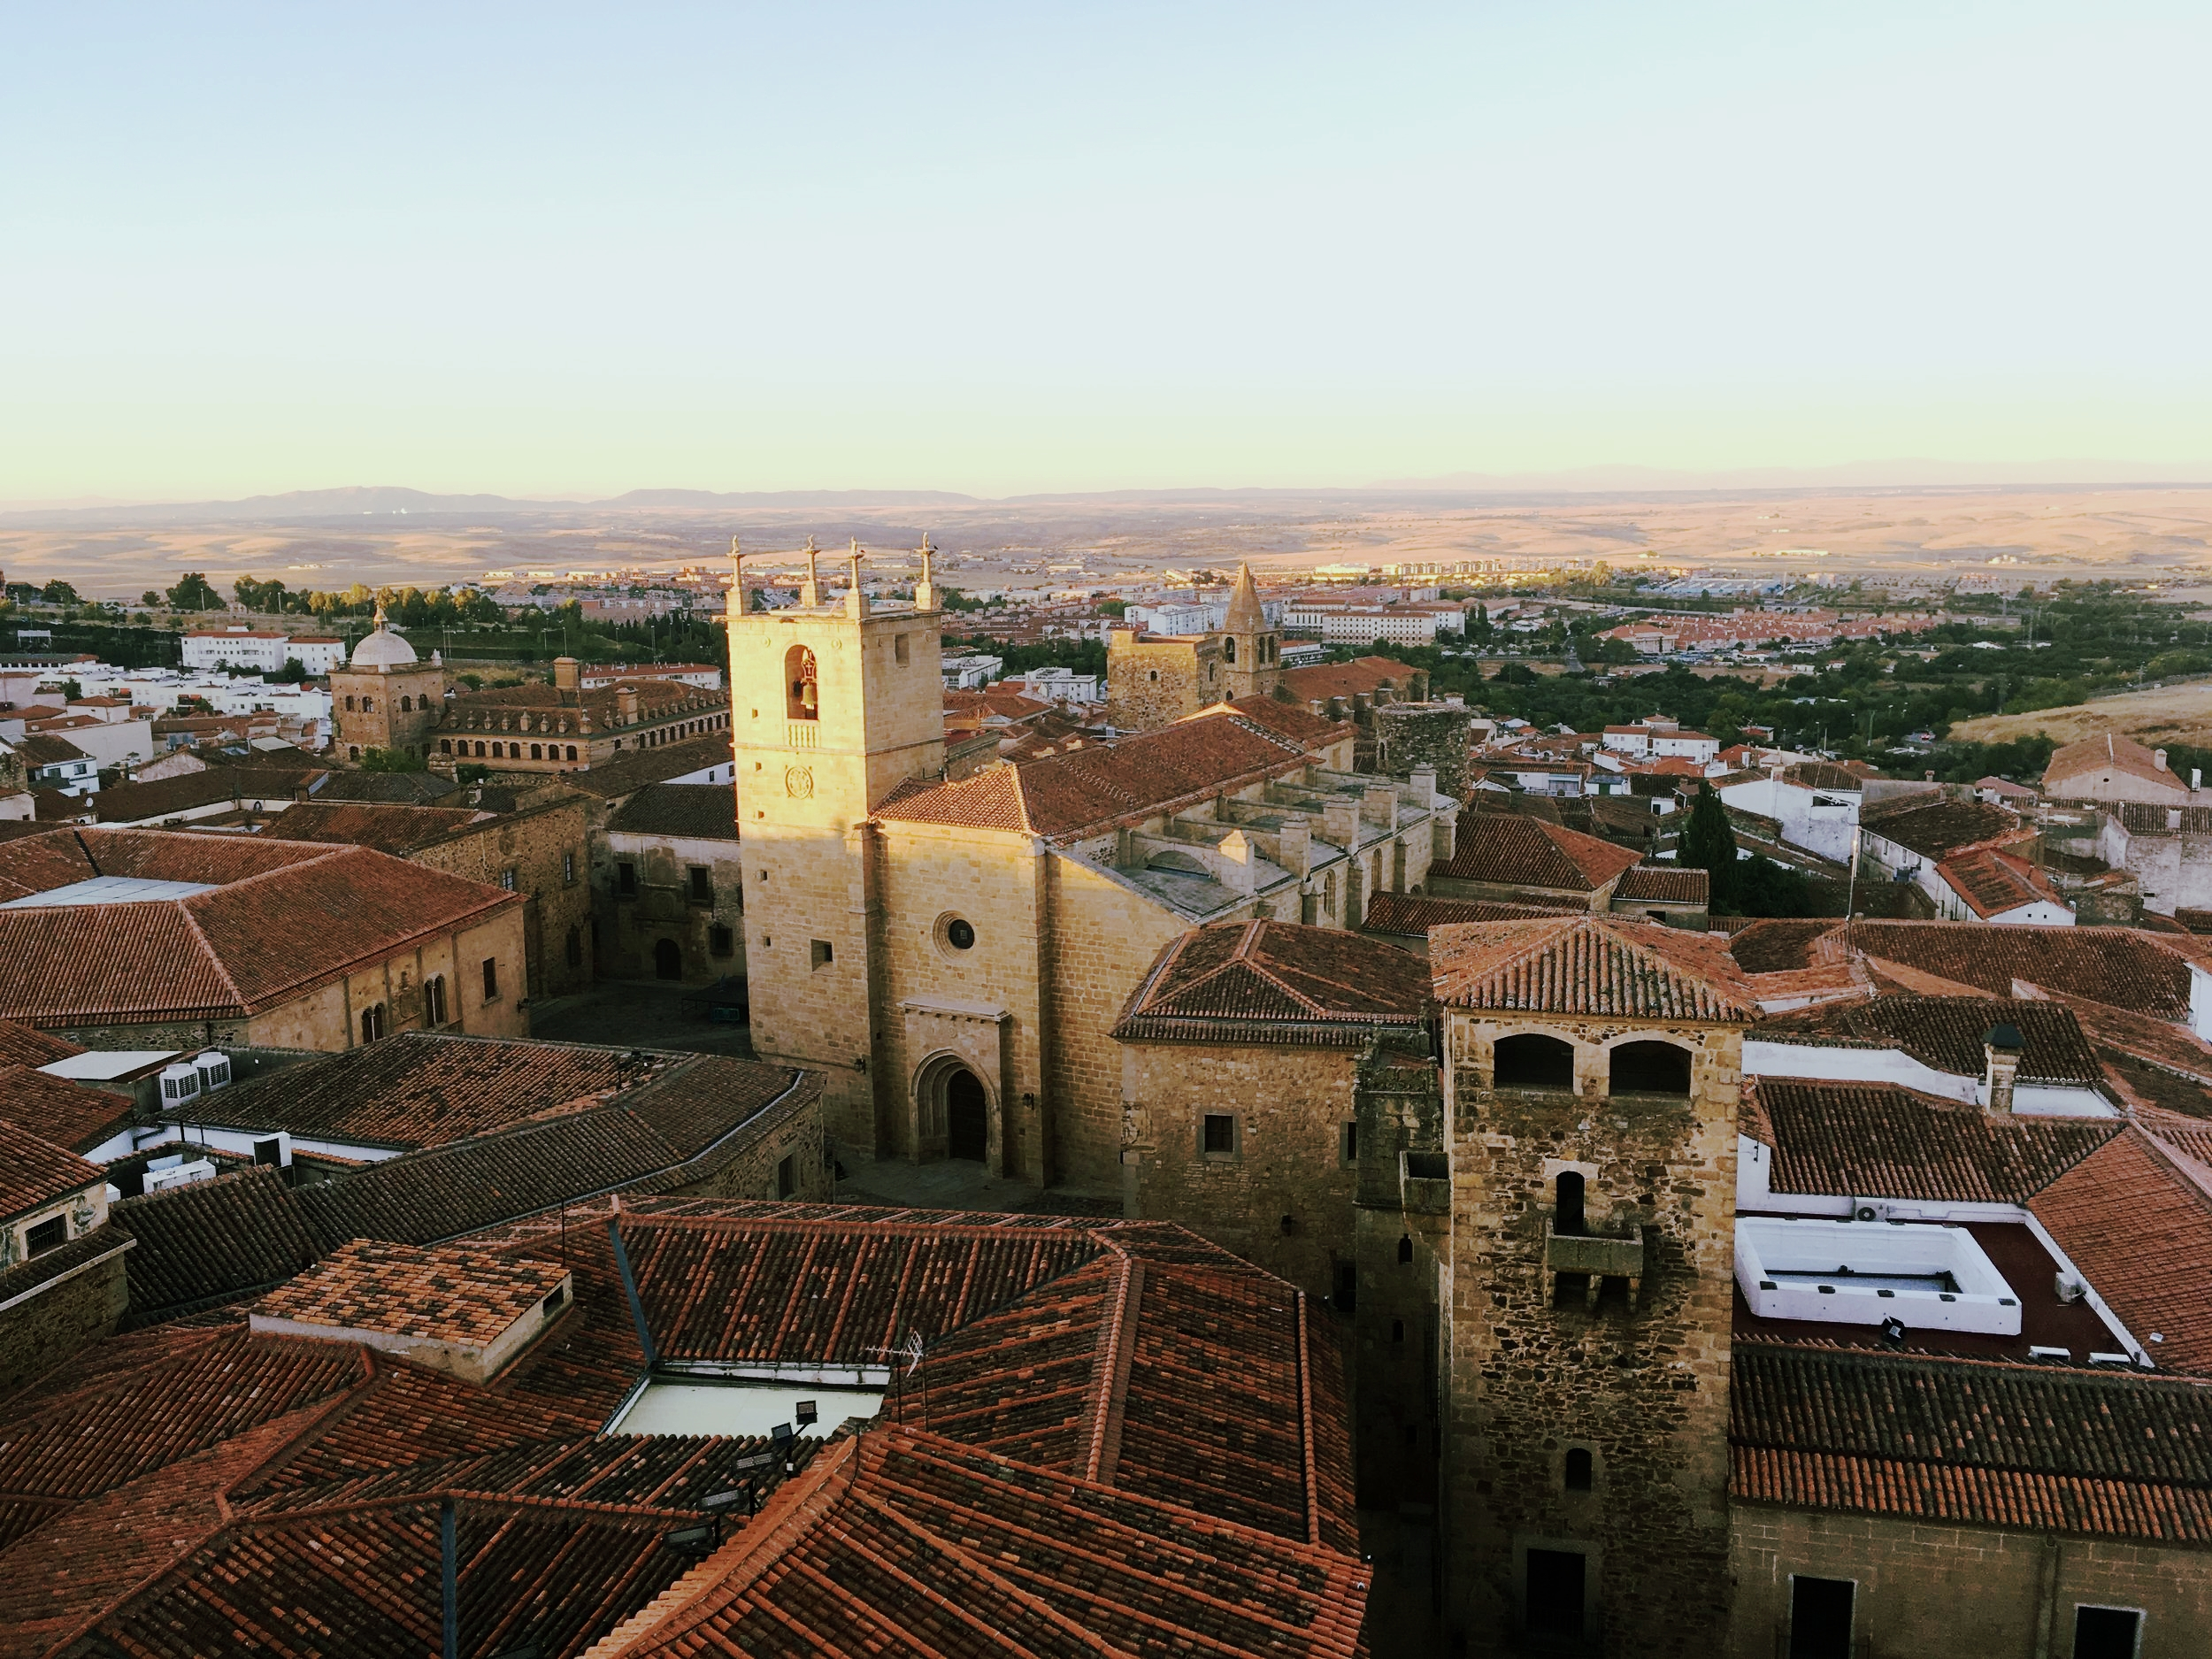 CONDÉ NAST TRAVELER: A Weekend in Cáceres, Spain, the Newest 'Game of Thrones' Filming Location